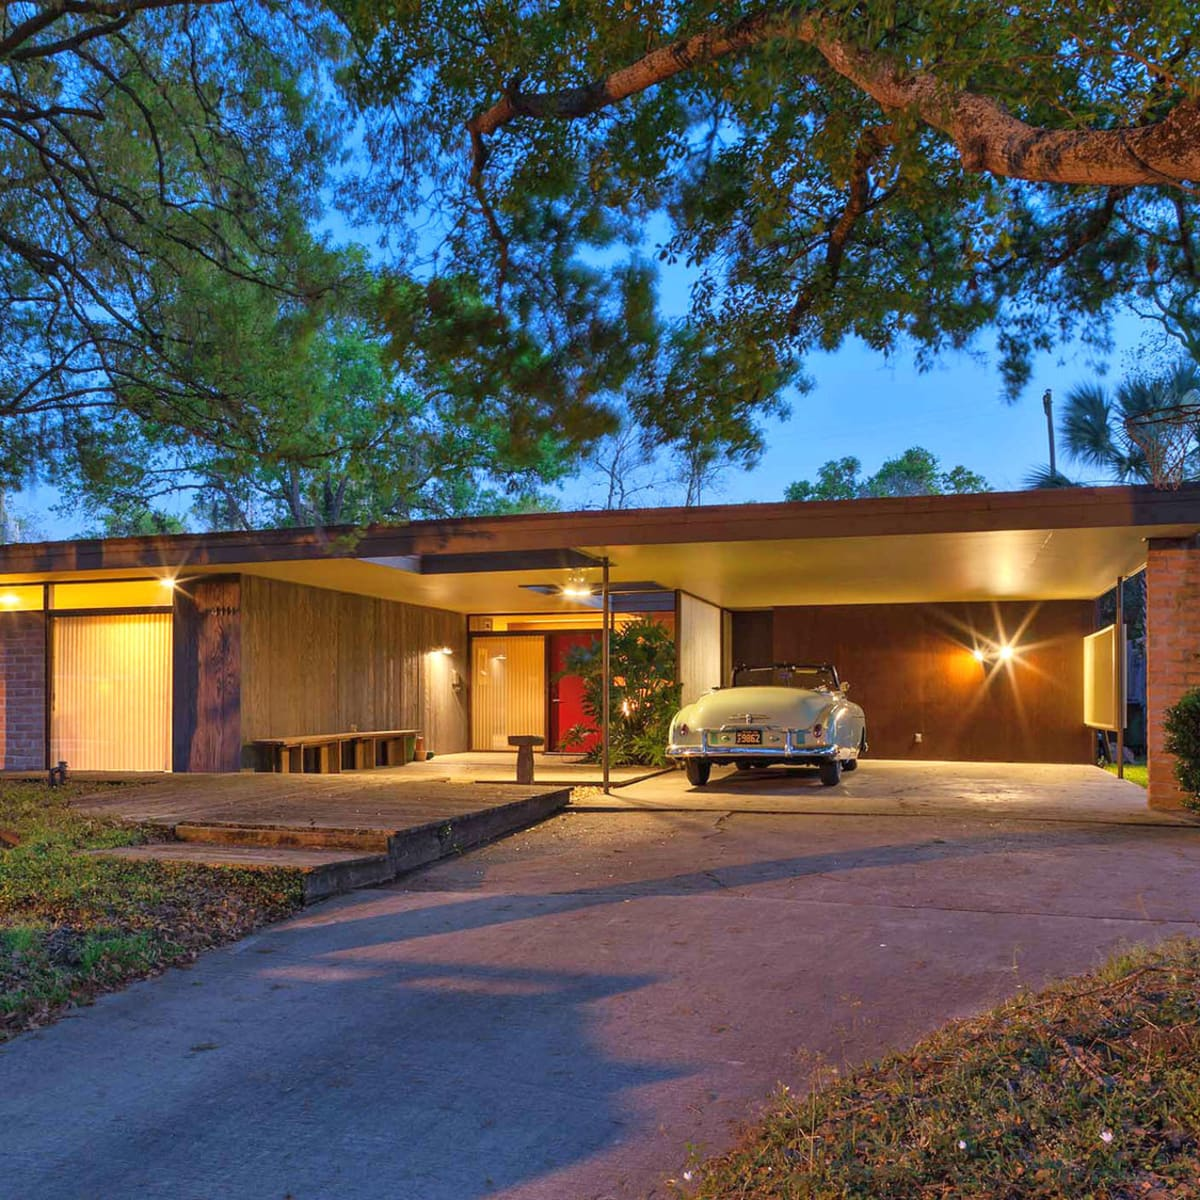 Cornerstone Dinner, Feb. 2016, Martha and Steve Curry home designed by Lars Bang, 1953